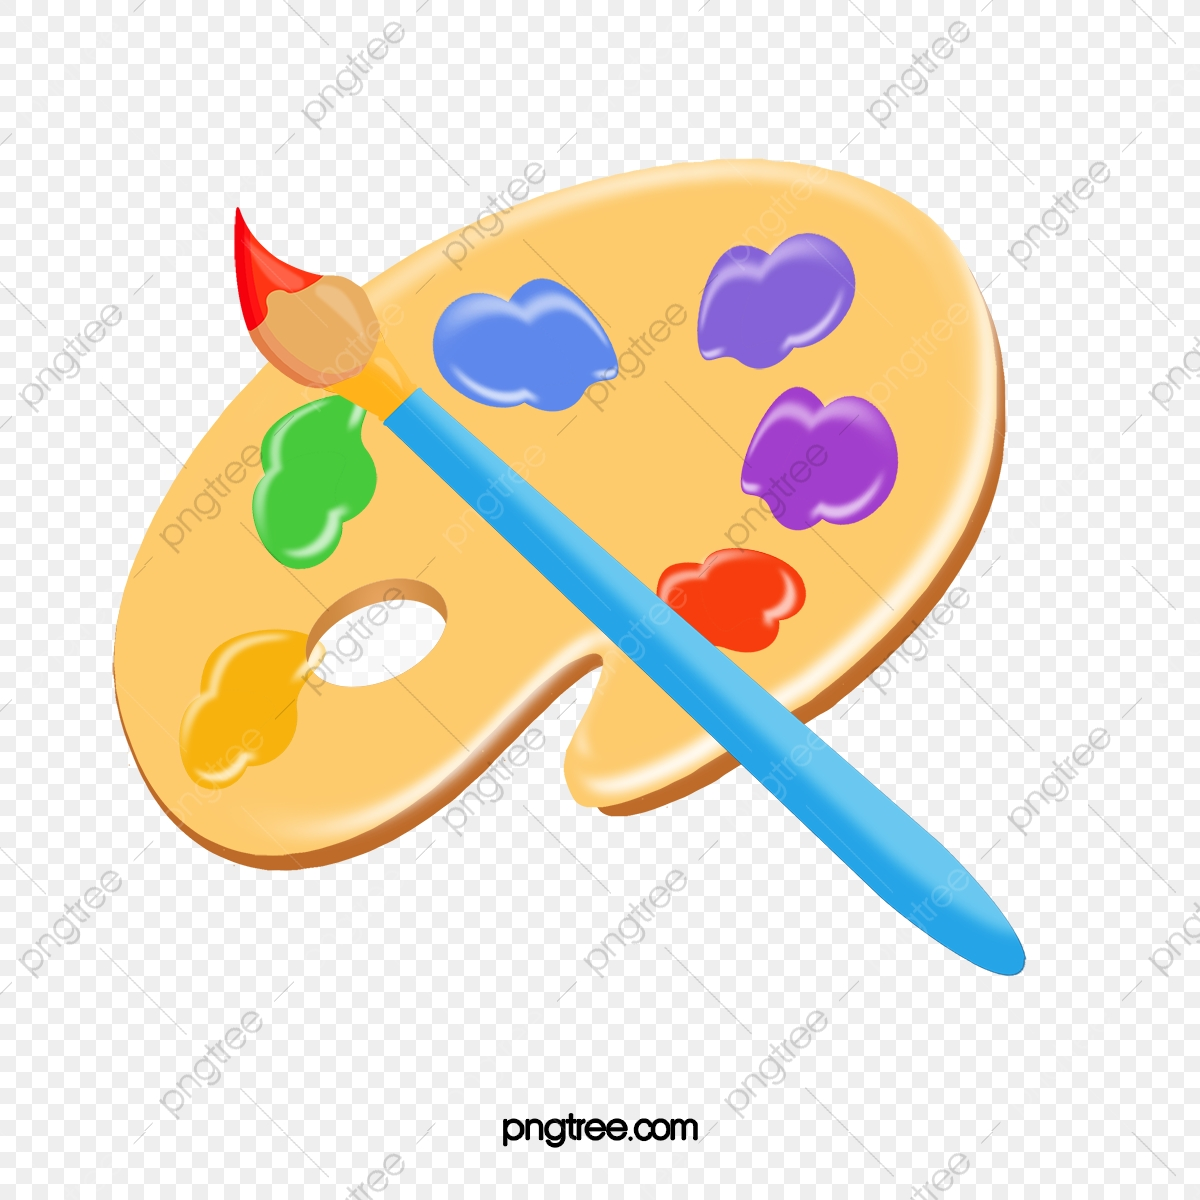 Drawing Tools Drawing Tools Png Transparent Clipart Image And Psd File For Free Download